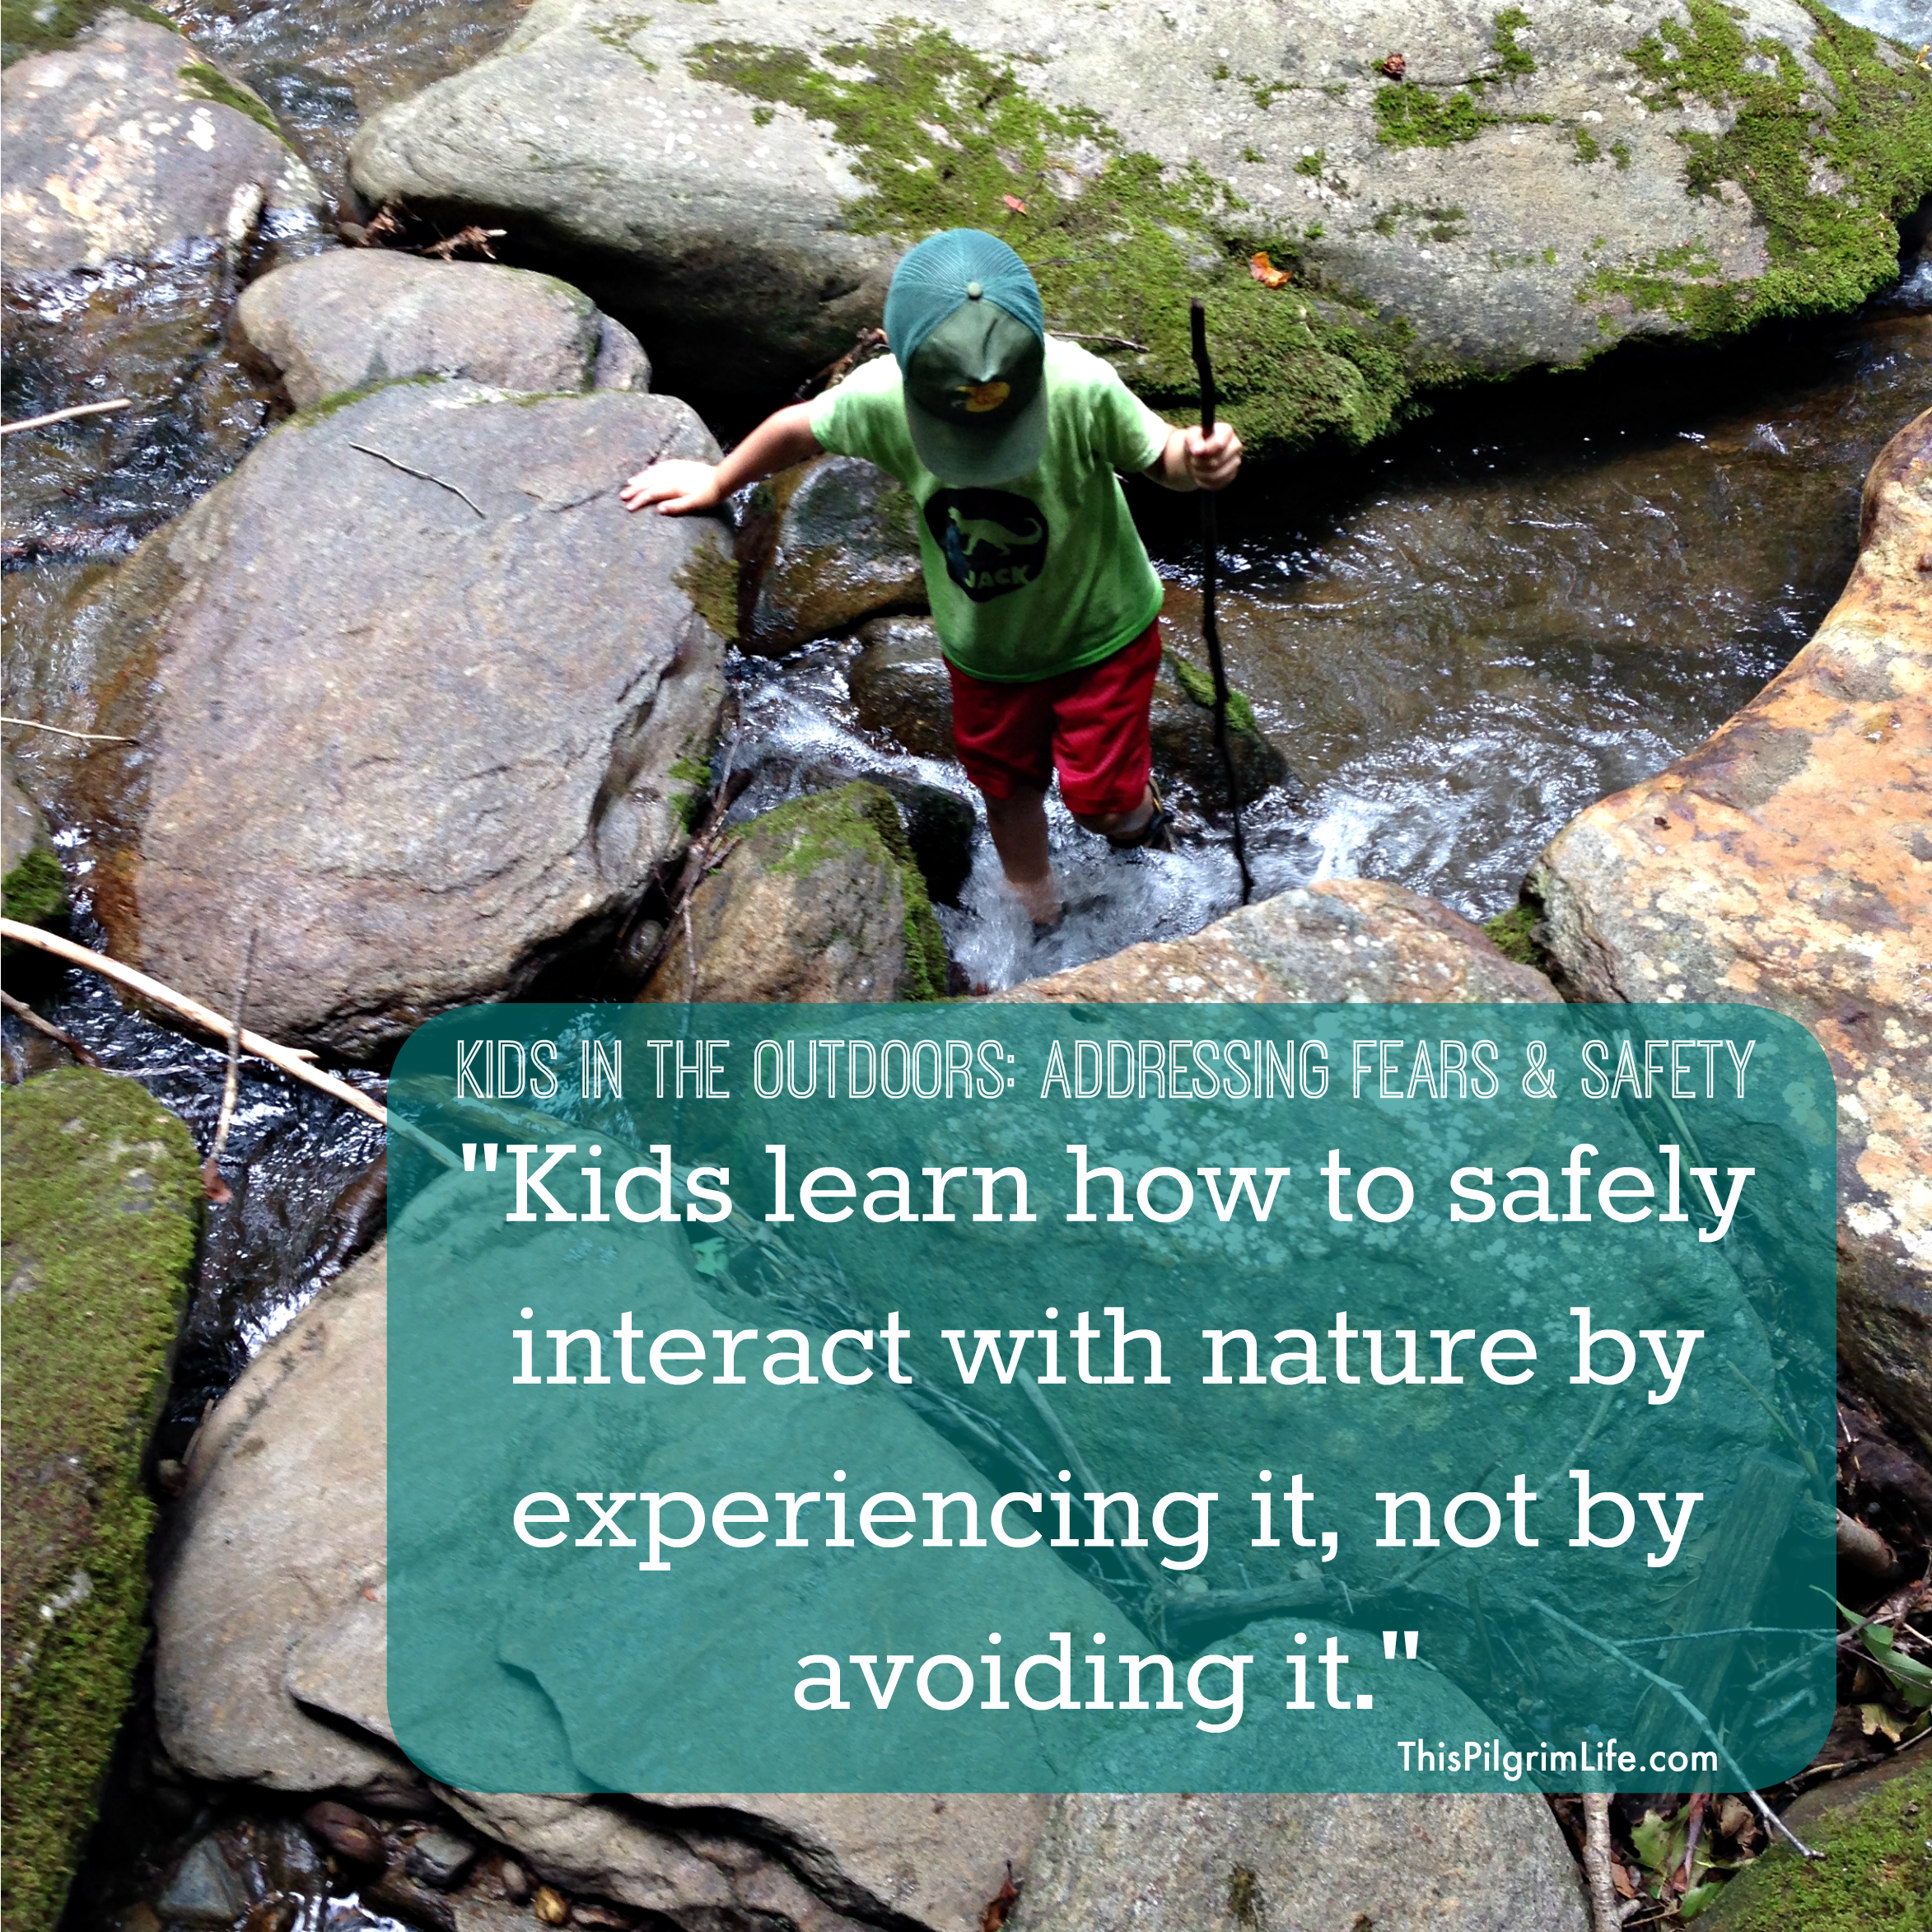 Kids in the Outdoors Addressing Fears & Safety